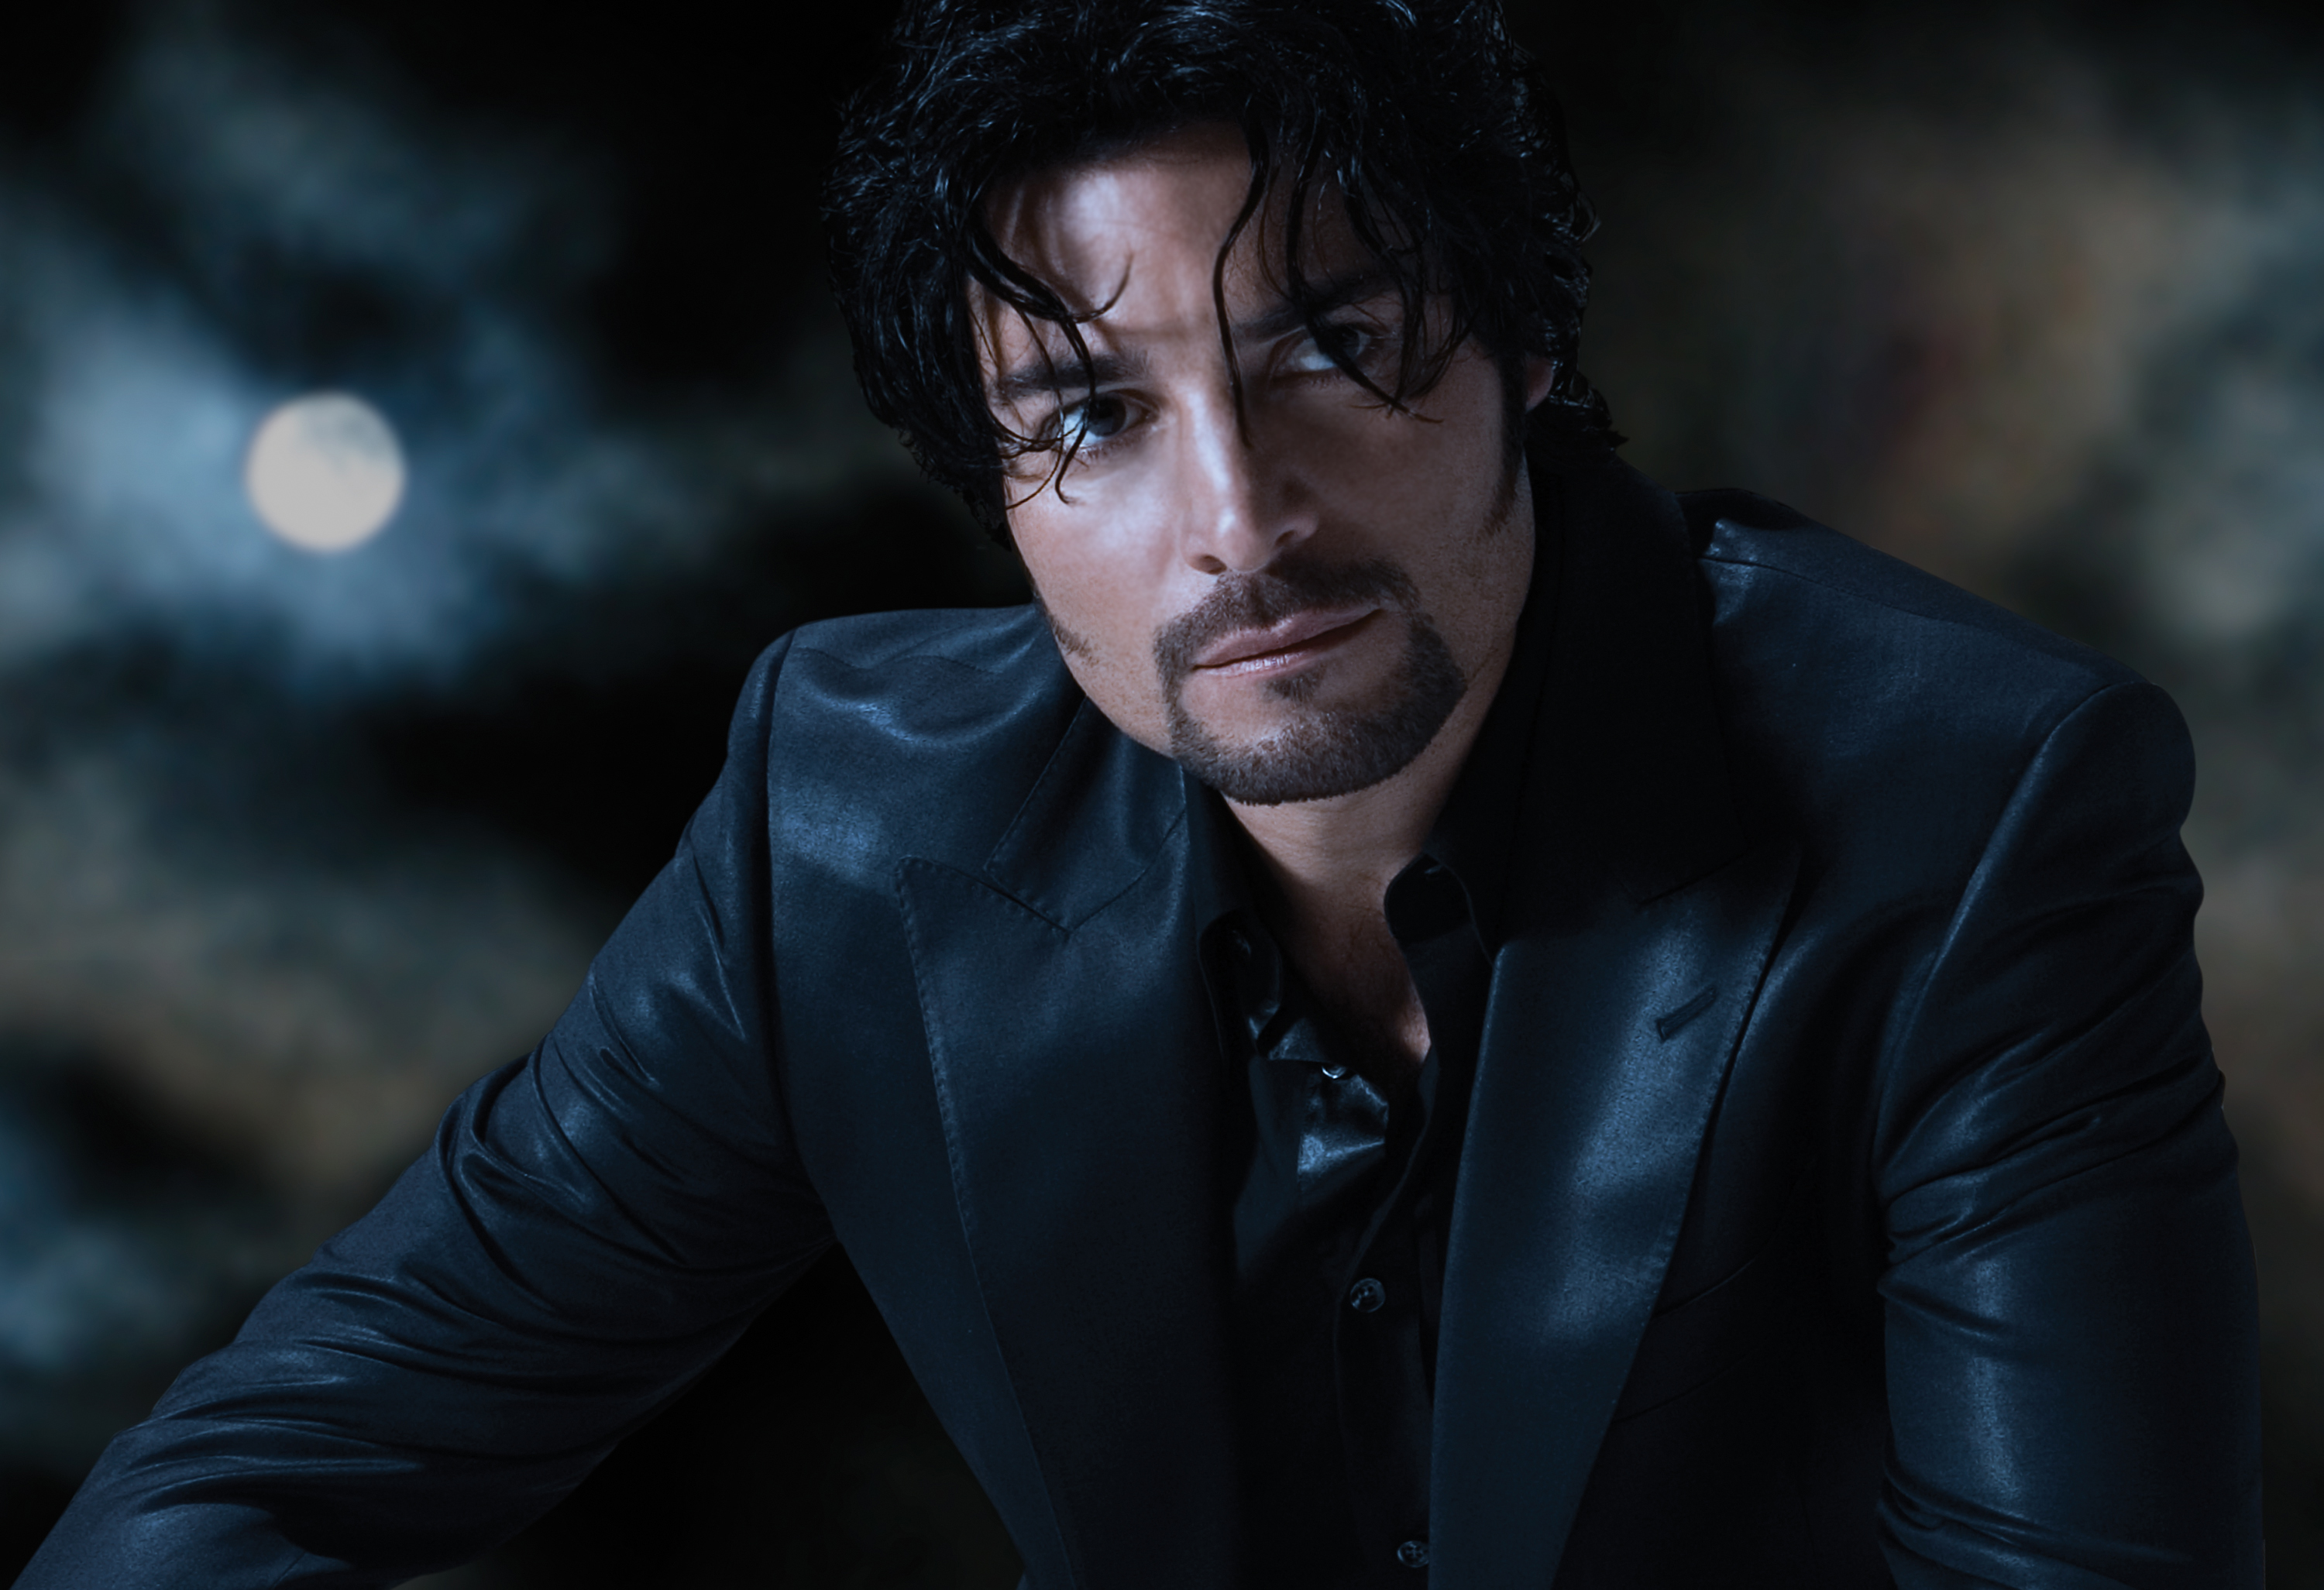 Top Latino Chayanne Humanos A Marte Live Rcp Brasil Blog